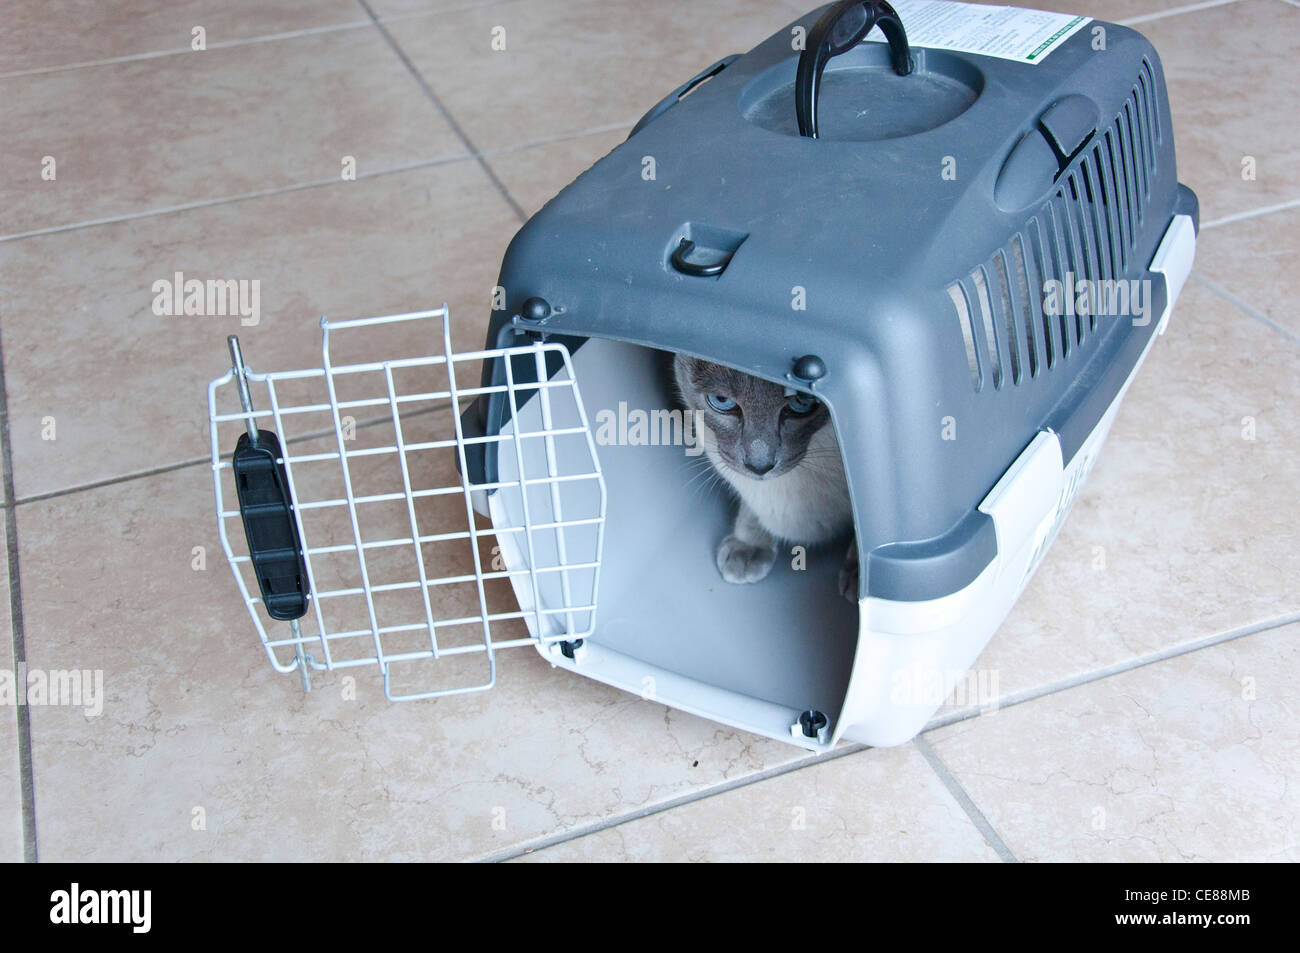 Pet Carrier Travel Stock Photos & Pet Carrier Travel Stock Images ...